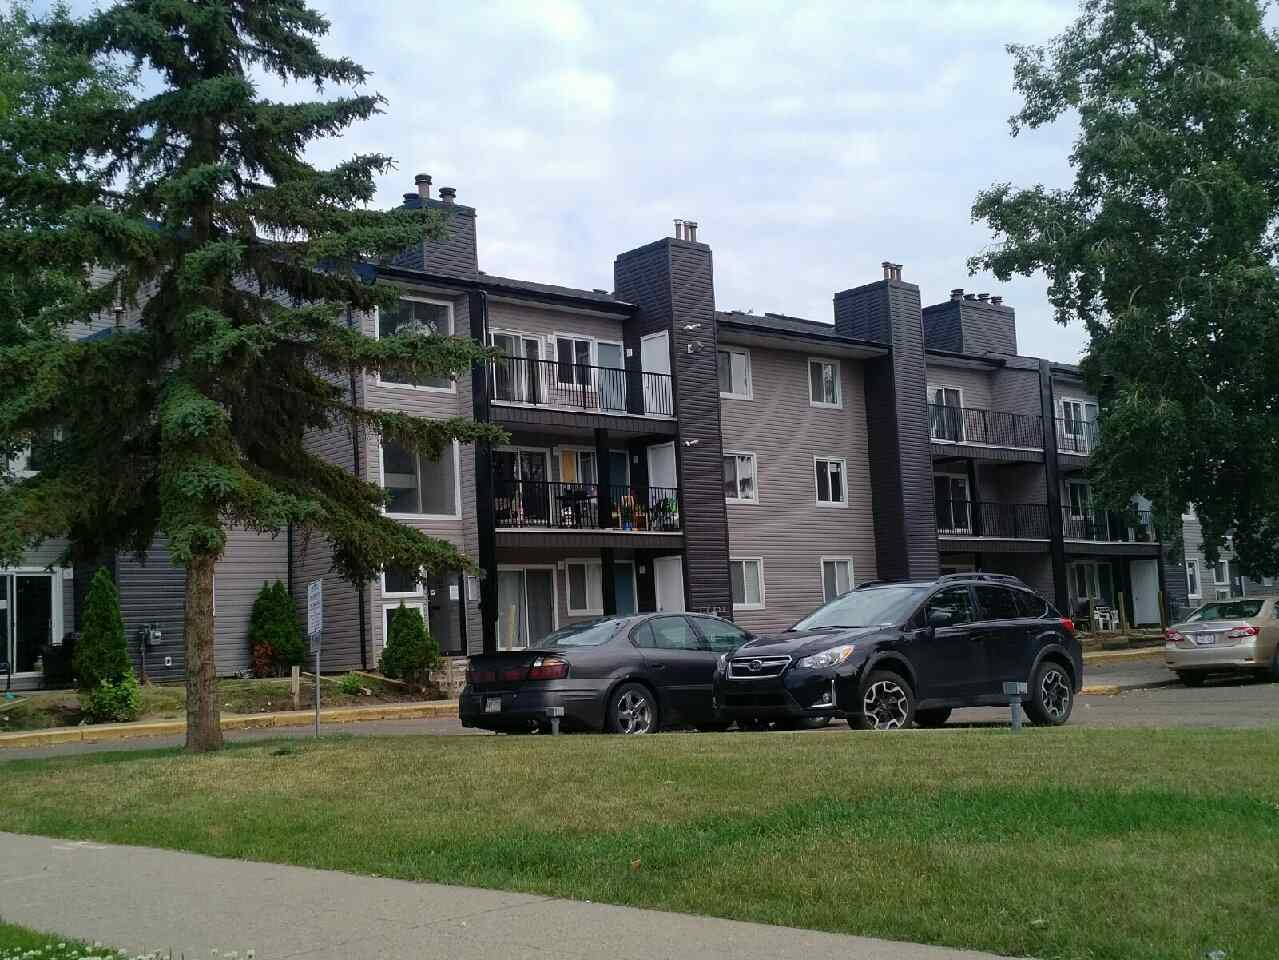 Sample photo of new balconies and exterior (sample from adjacent building)